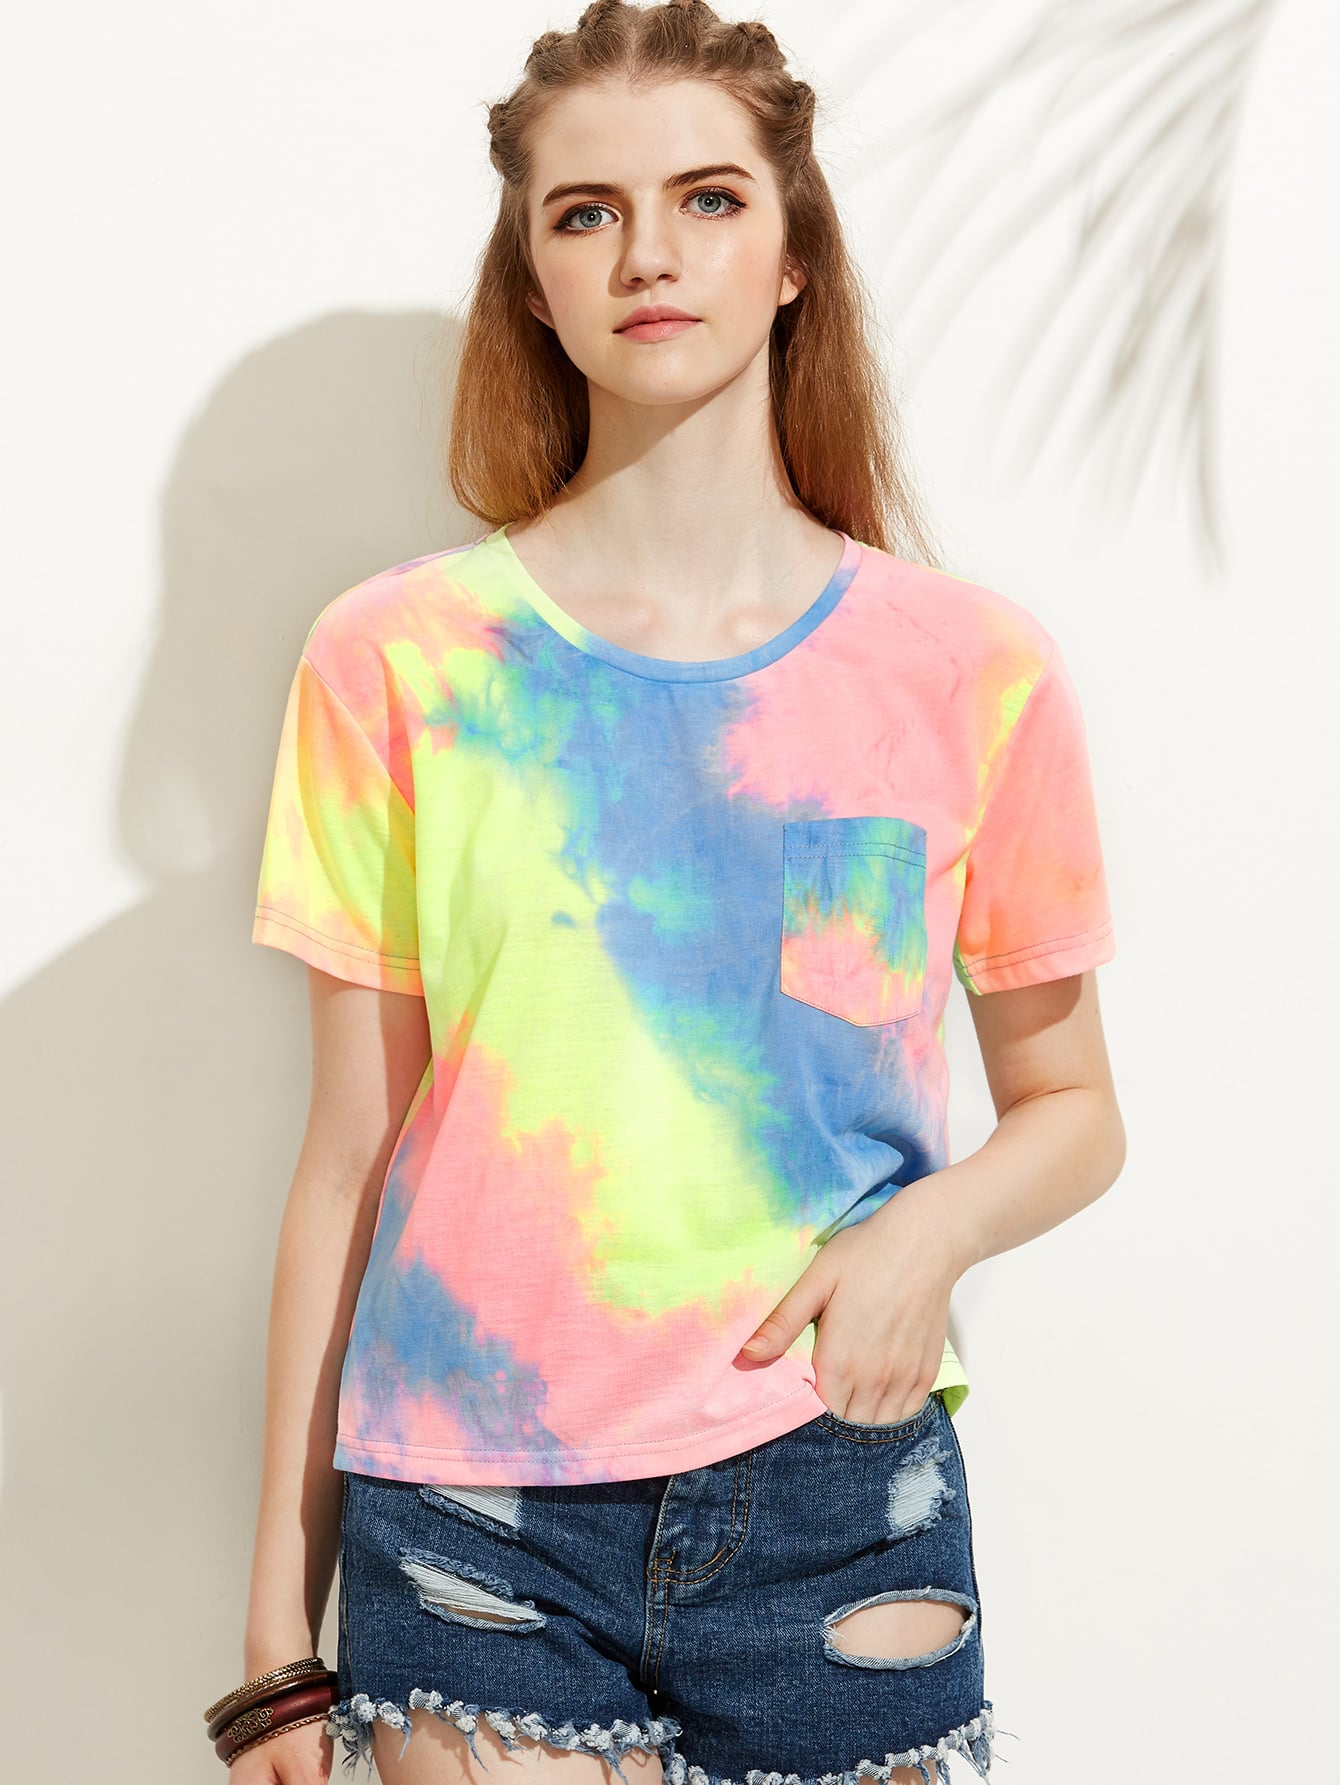 Rainbow Watercolor Chest Pocket Tee колготки conte nuance размер 4 плотность 40 den nero